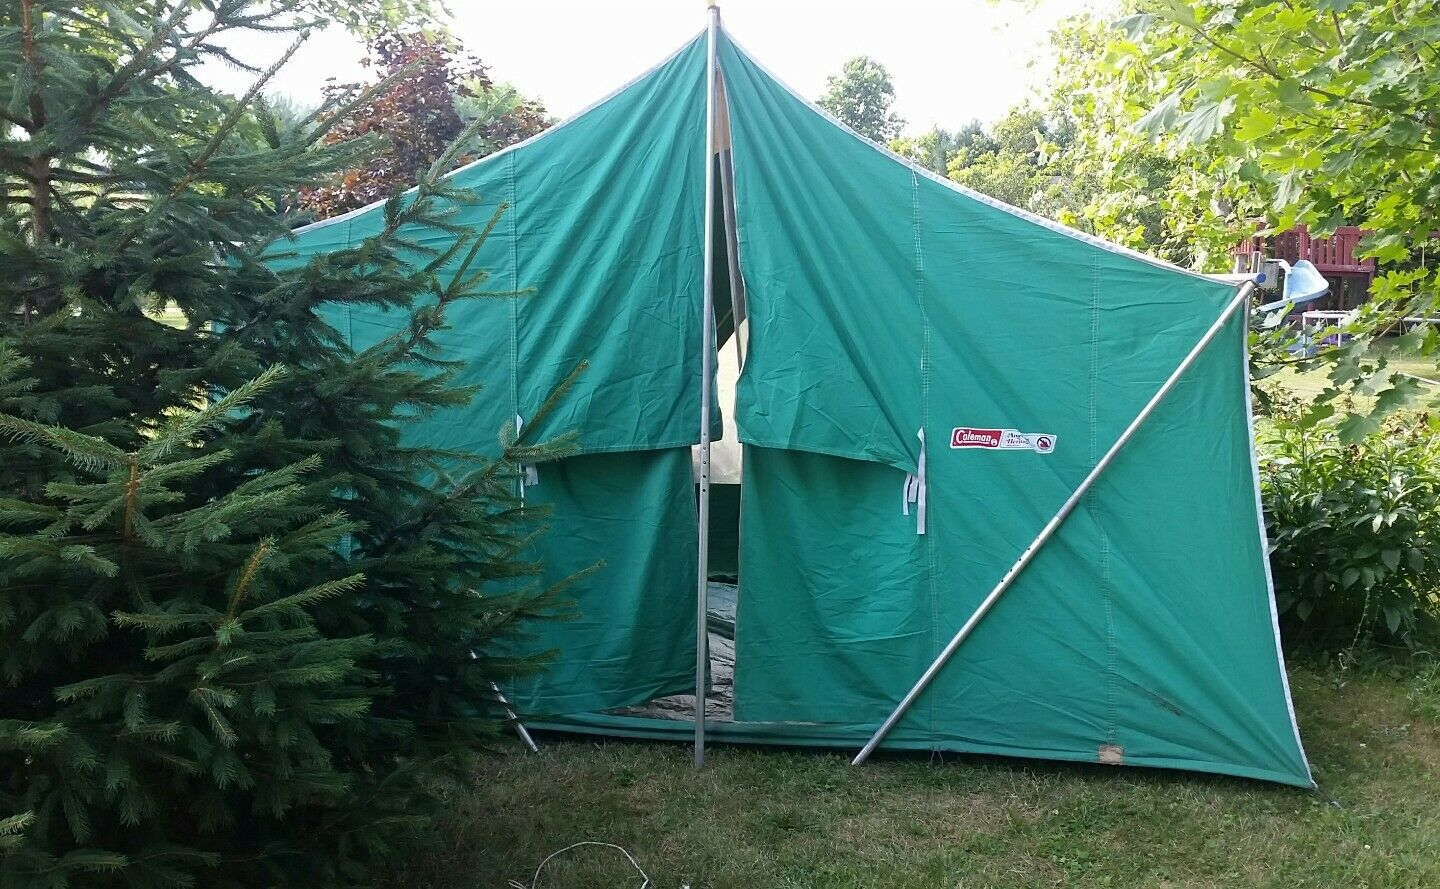 Vintage Canvas 8 Tent Coleman American Heritage Camping 11 x 8 Canvas 1970s Large Peaked 28b99a